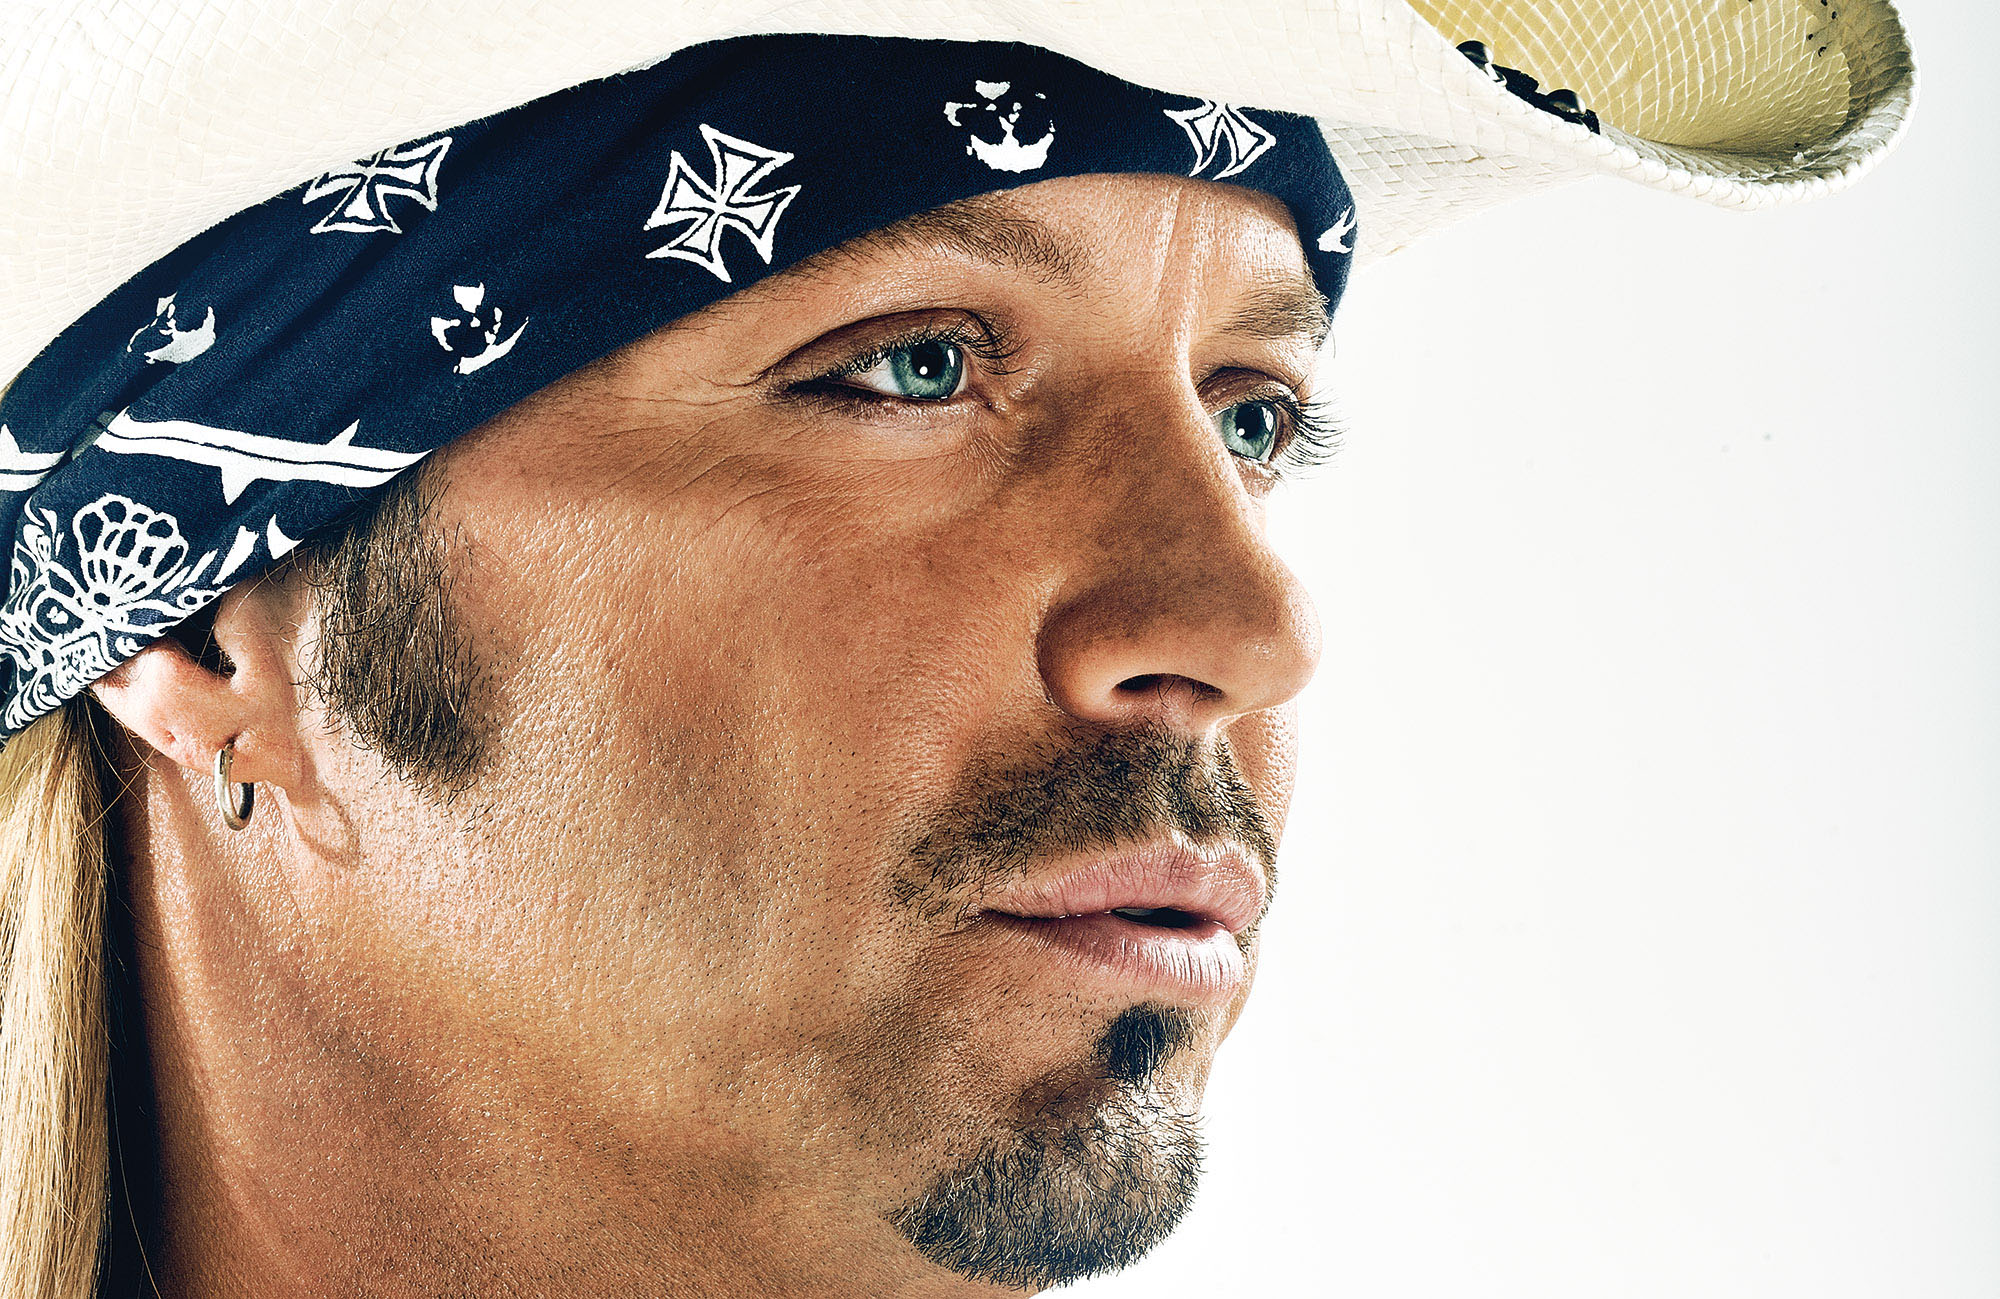 Celebrity photographer Blair Bunting photographs Bret Michaels